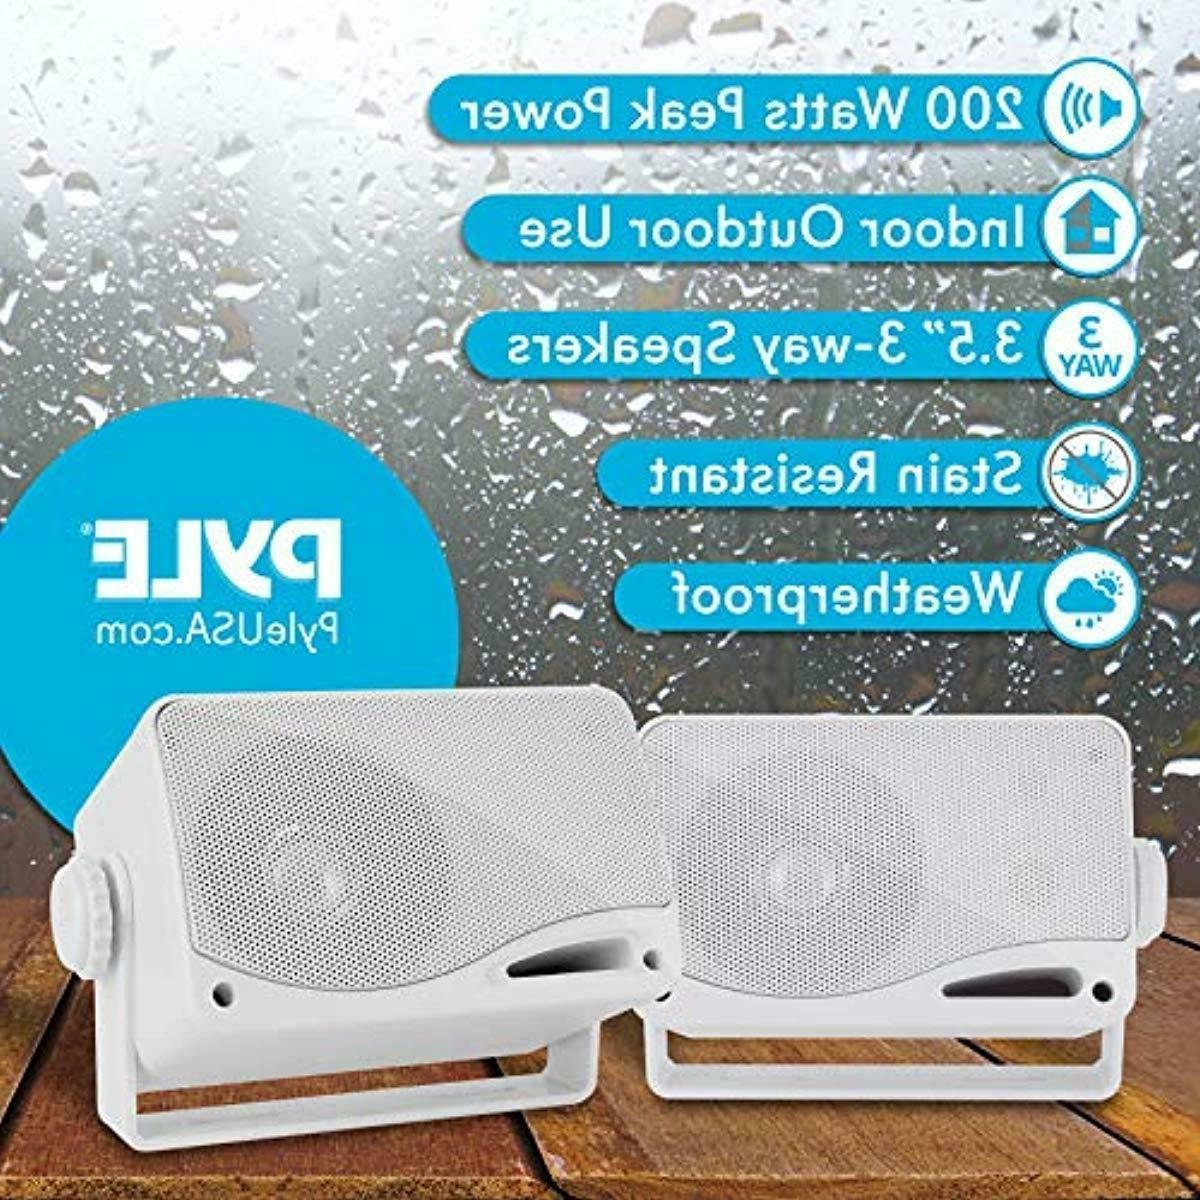 Waterproof Speakers Mini Box RV